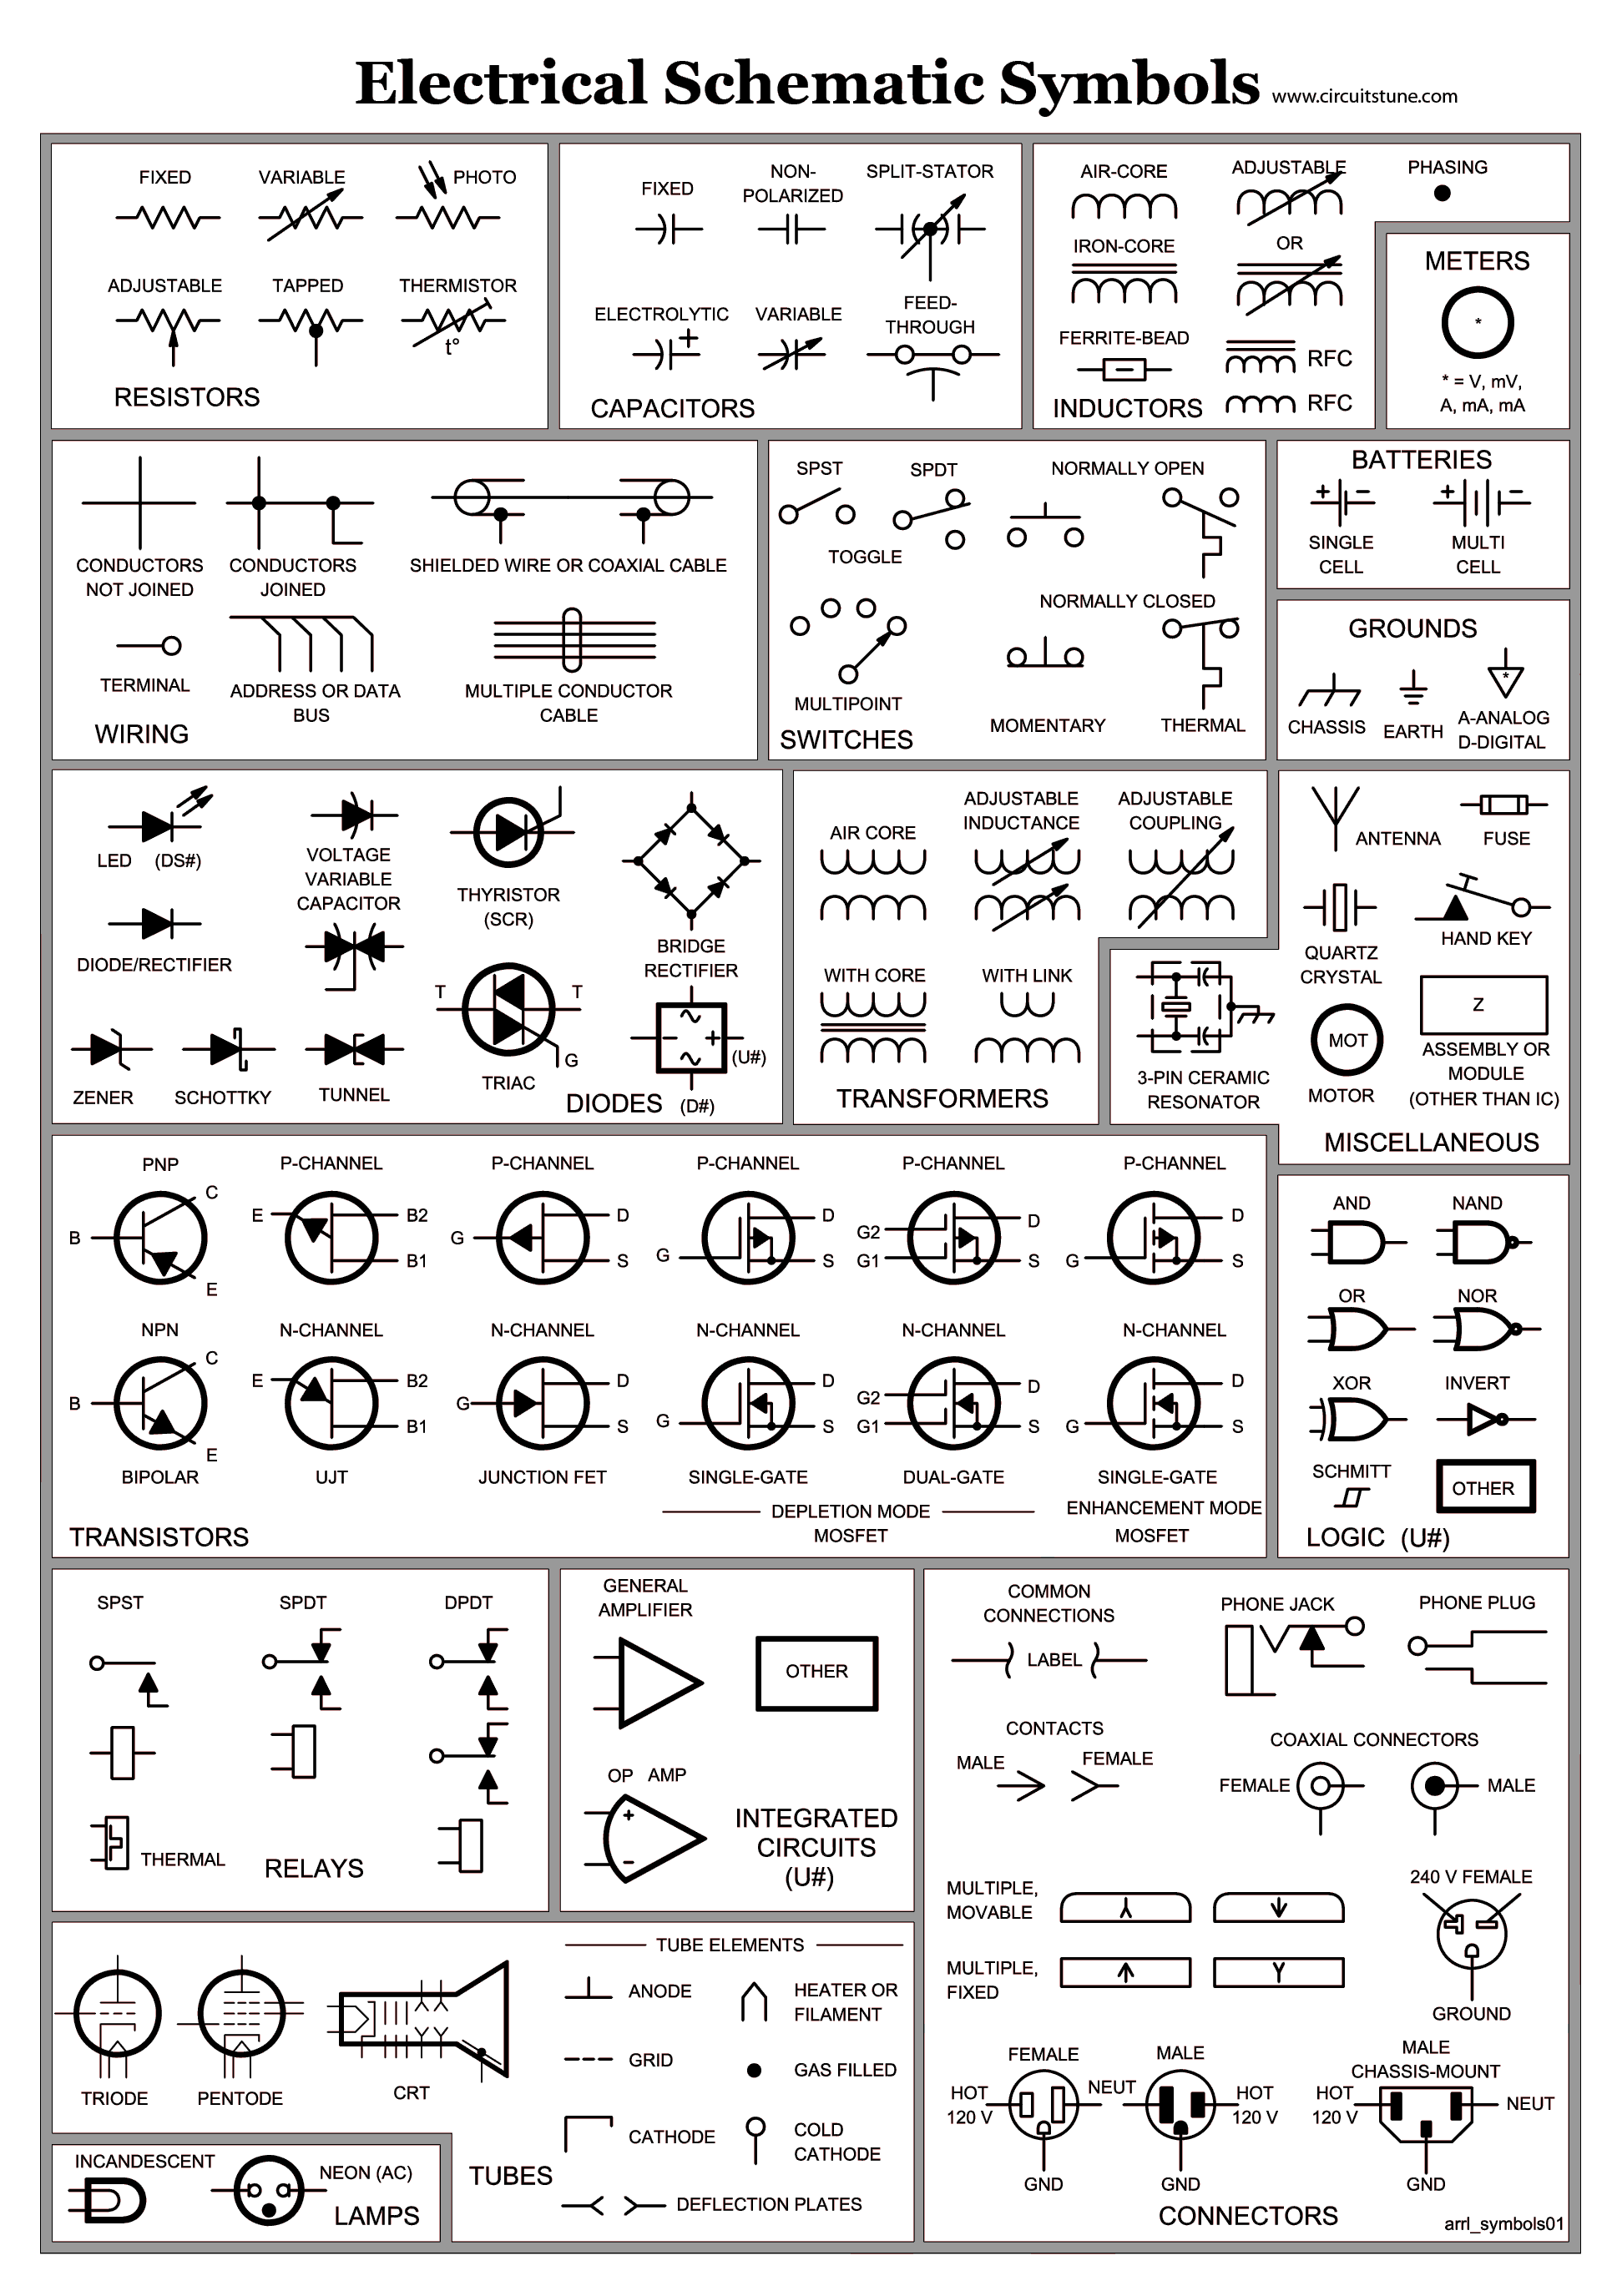 a65d176364692d2ebe913b58a654cfc3 wiring diagram symbols pdf wiring diagram cbr \u2022 wiring diagrams how to read automotive wiring diagrams pdf at gsmx.co